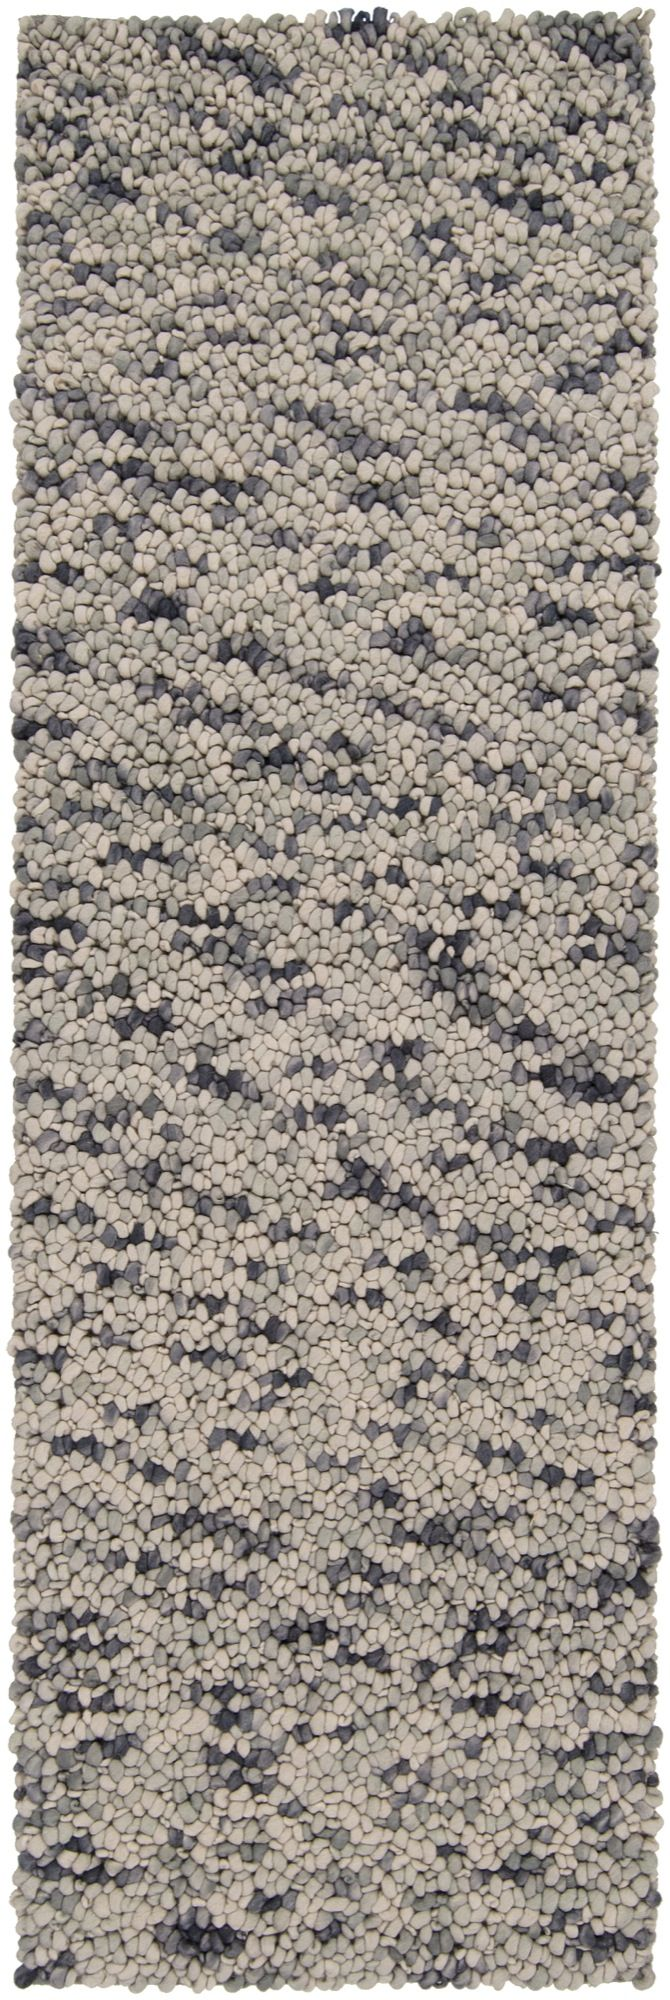 rugpal goffre shag area rug collection